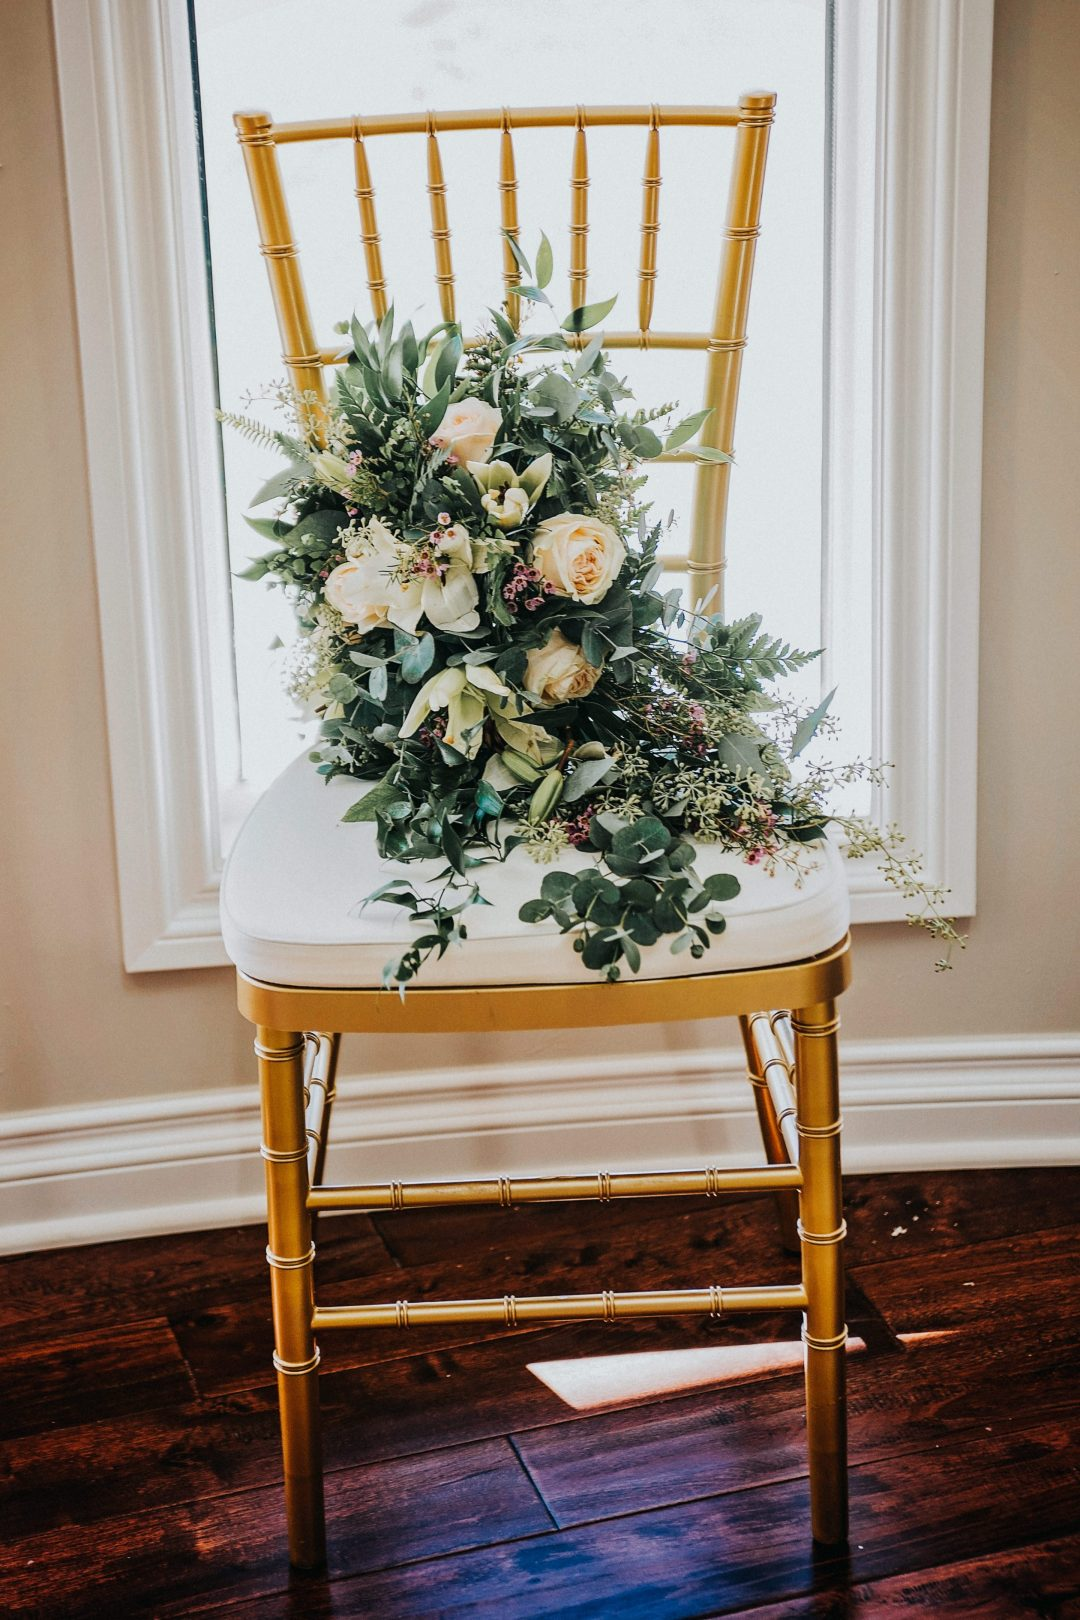 Detroit Chiavari Chairs Photo by Nova Rose